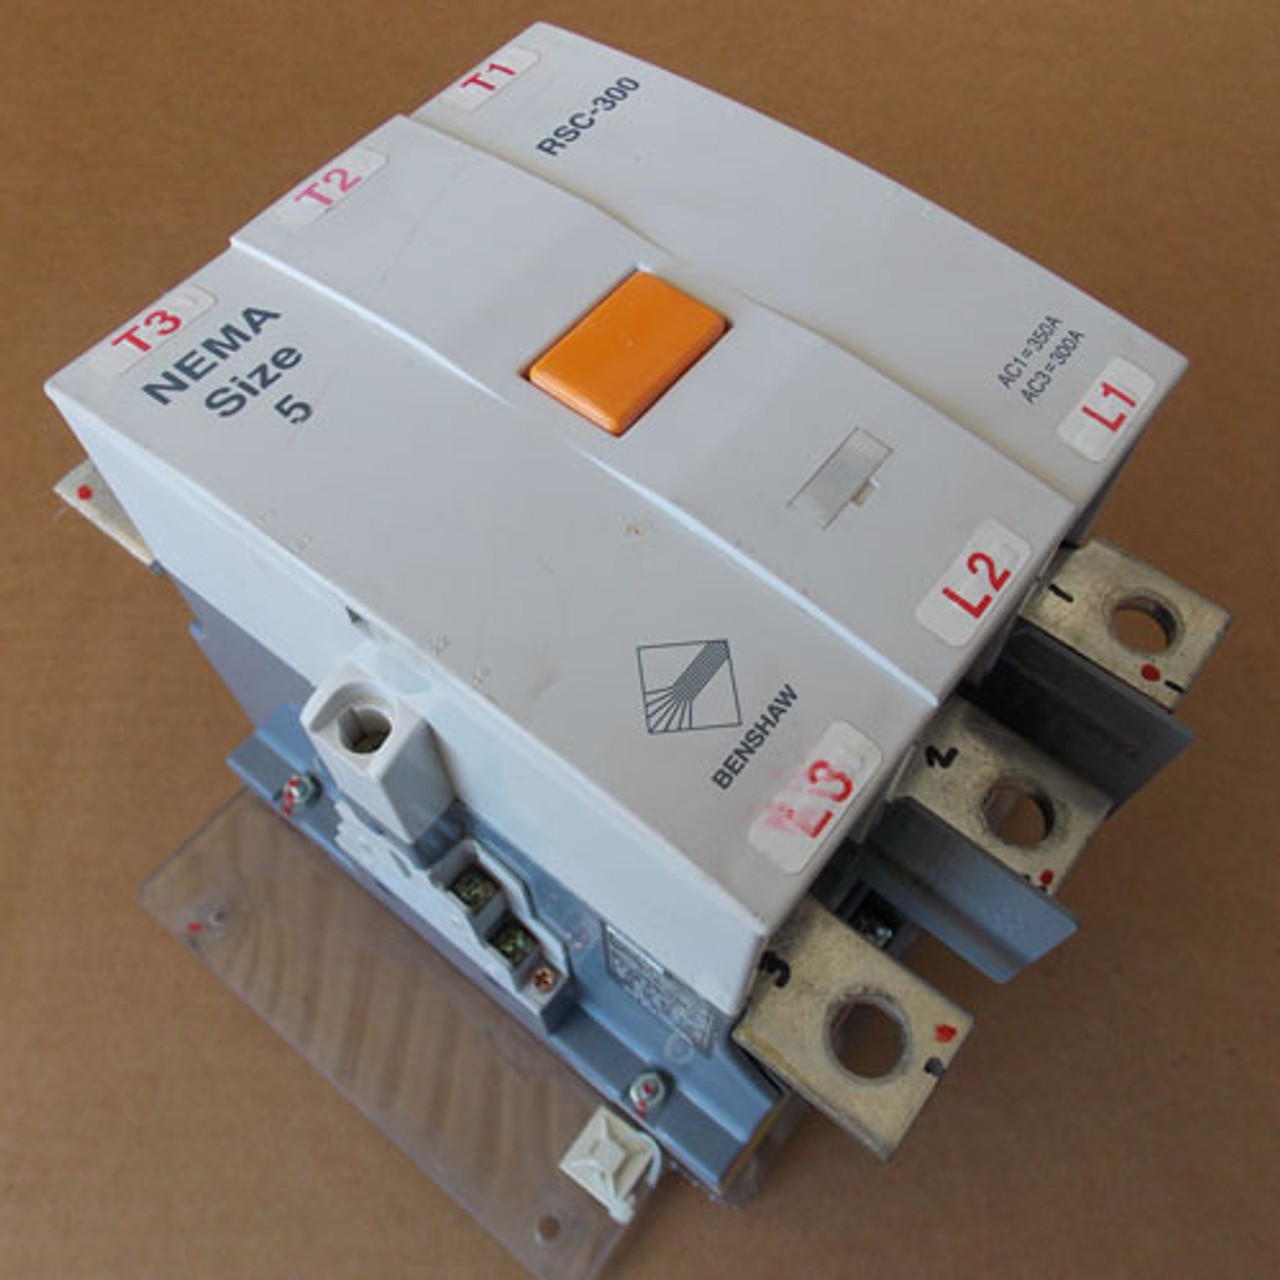 Benshaw RSC-300 Nema Size 5 3 Pole 350 Amp Magnetic Contactor 120/240V Coil - Used